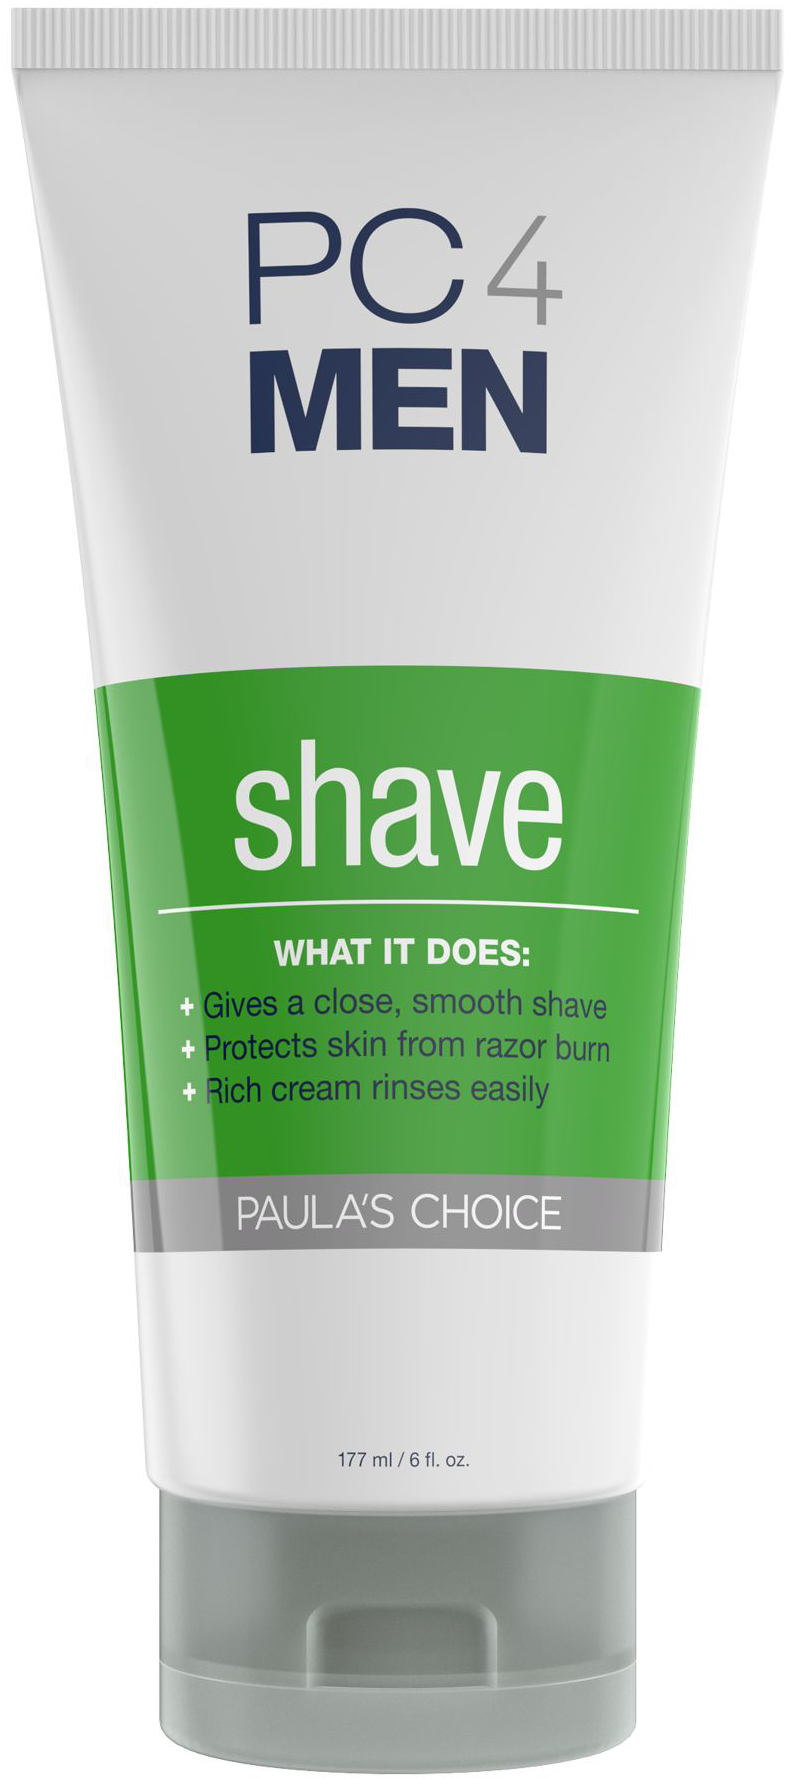 Kem cạo râu Paula's Choice PC4Men Shave